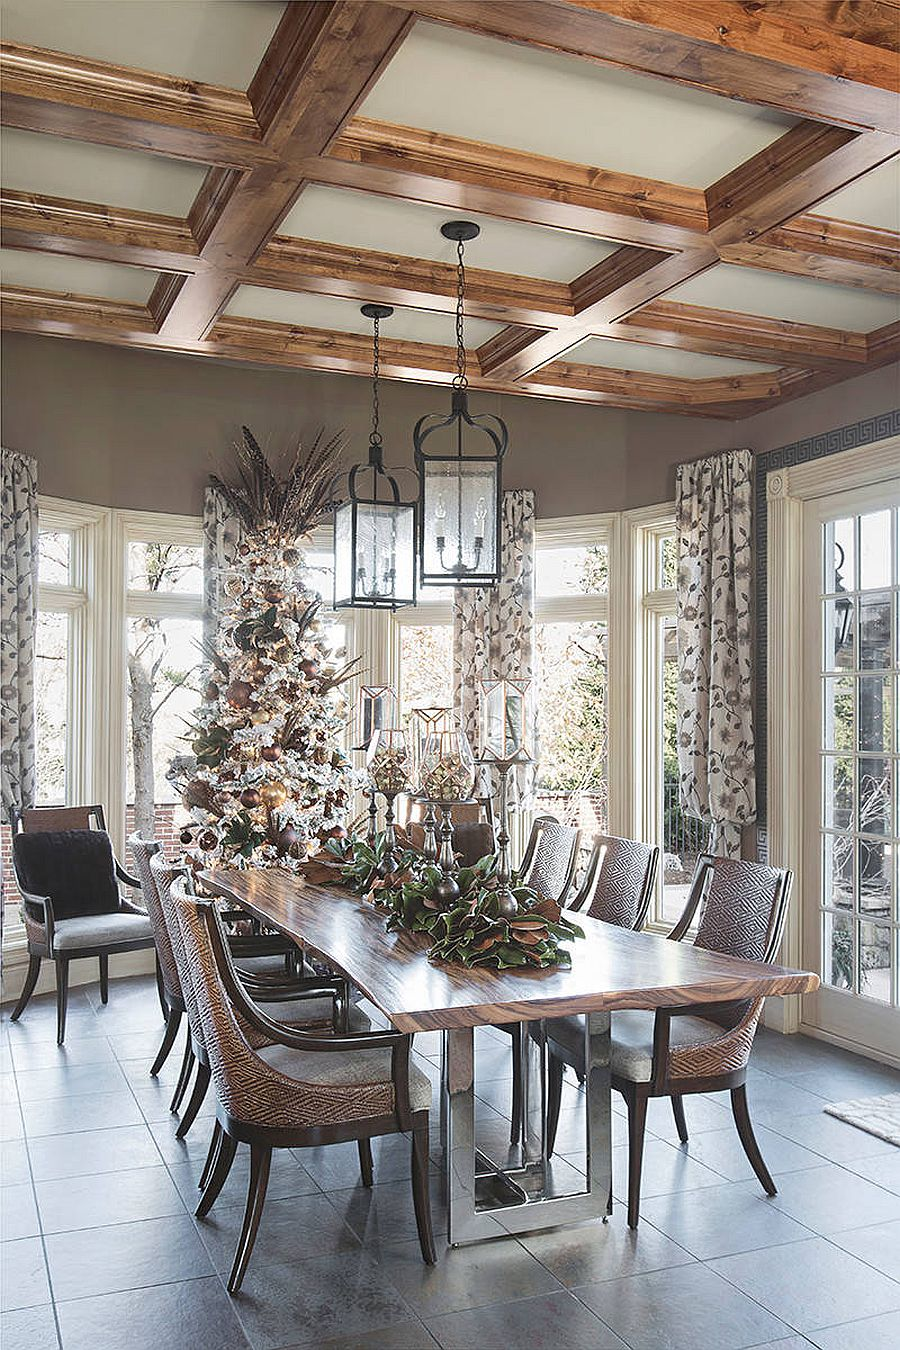 Choose the right color scheme for your holiday decorations in the dining room